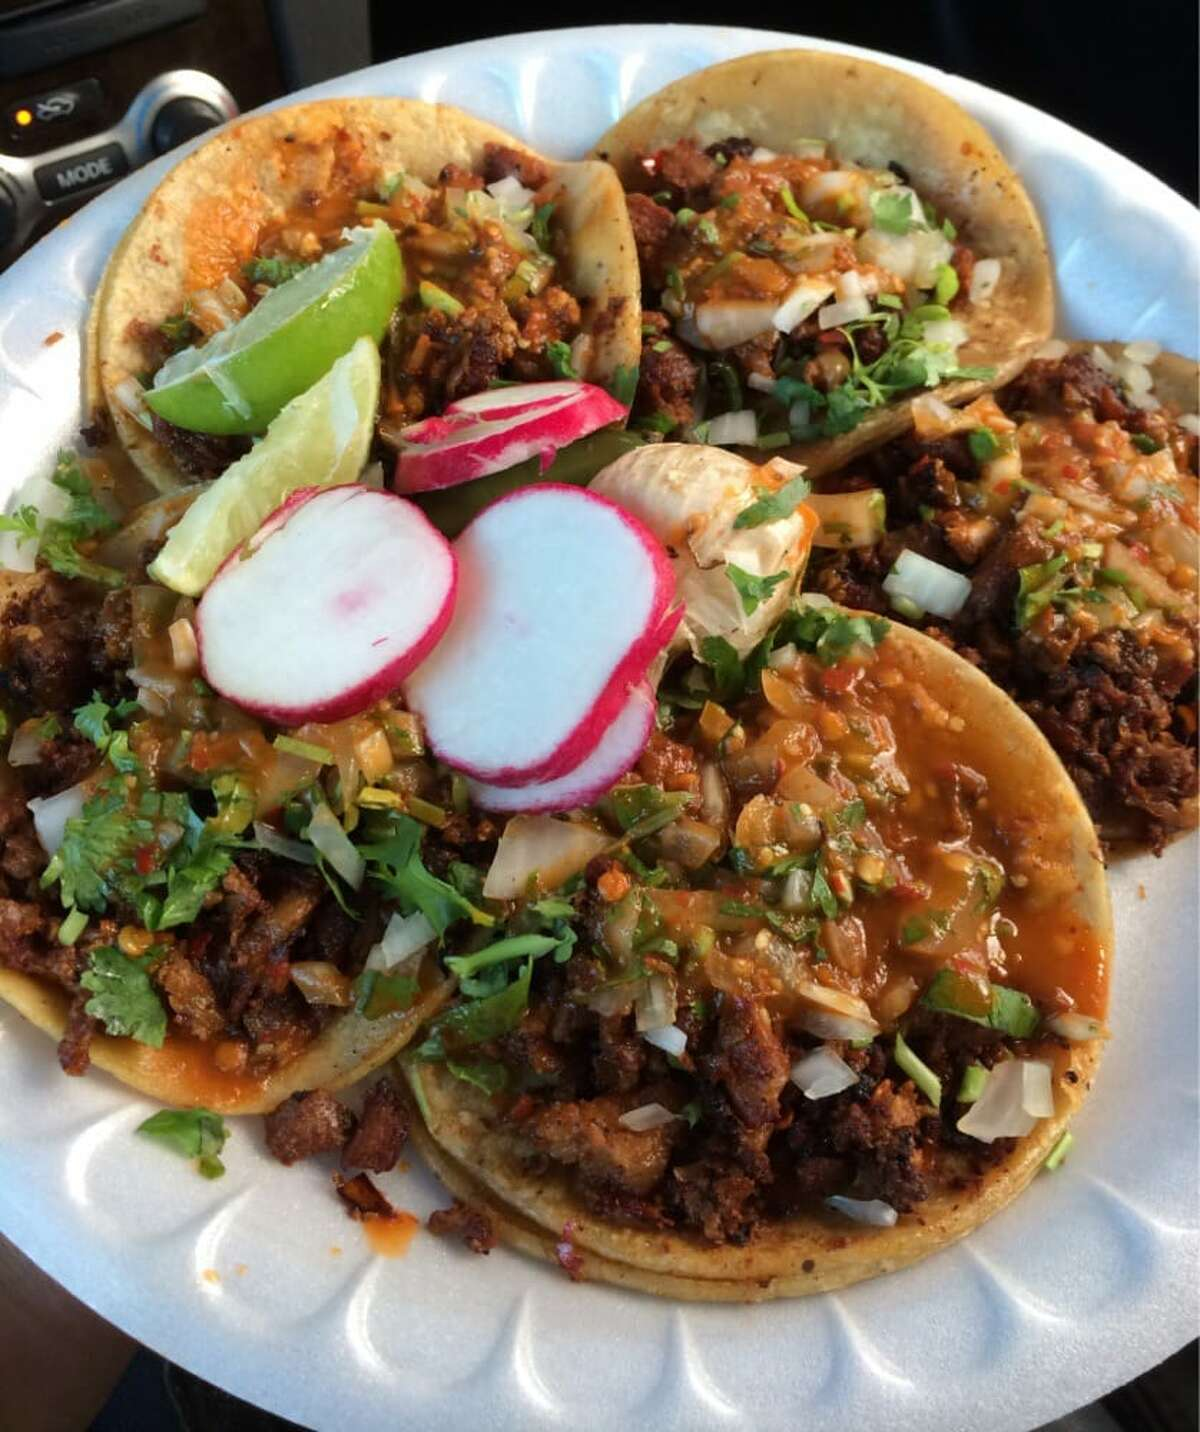 Tacos al pastor with the requisite sliced radish and limes at Oakland food truck, Tacos El Gordo.